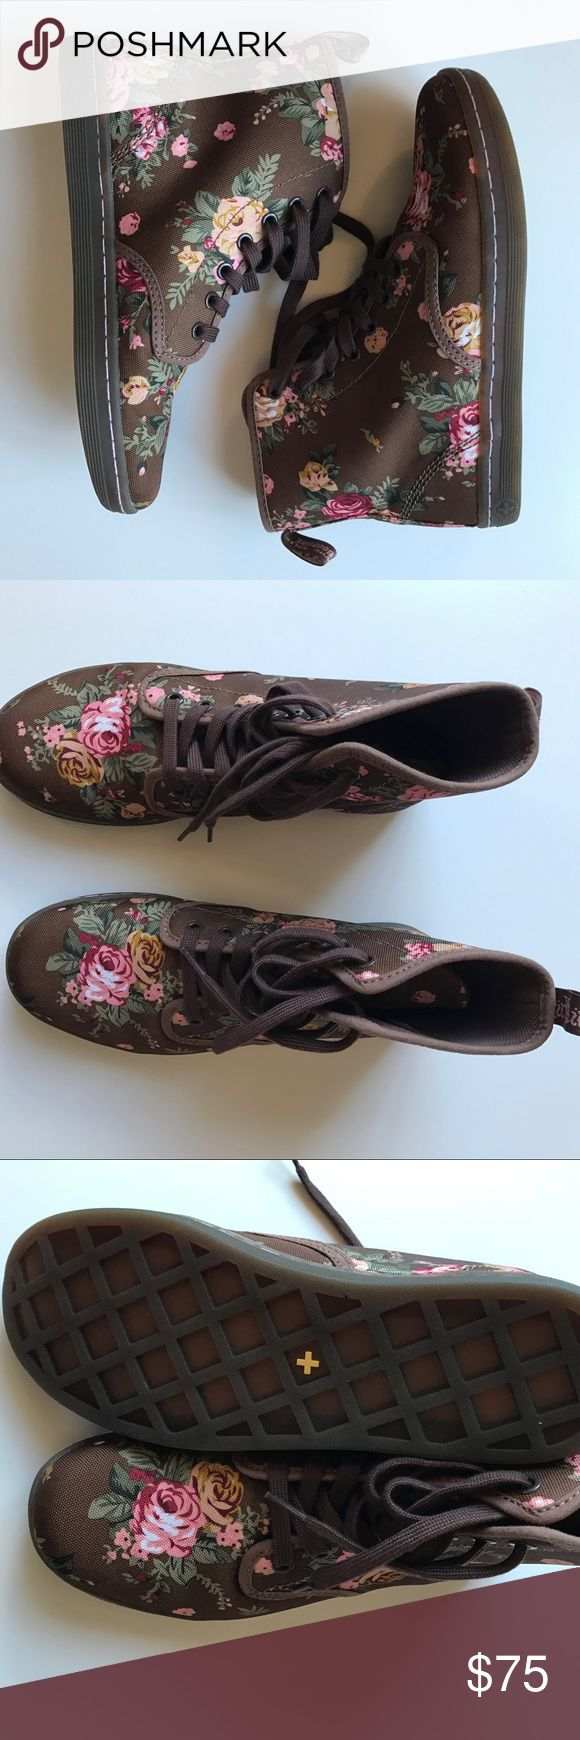 Doc Marten Floral Boot Brown Doc Marten Floral Boot Brown Dr. Martens Shoes Lace Up Boots